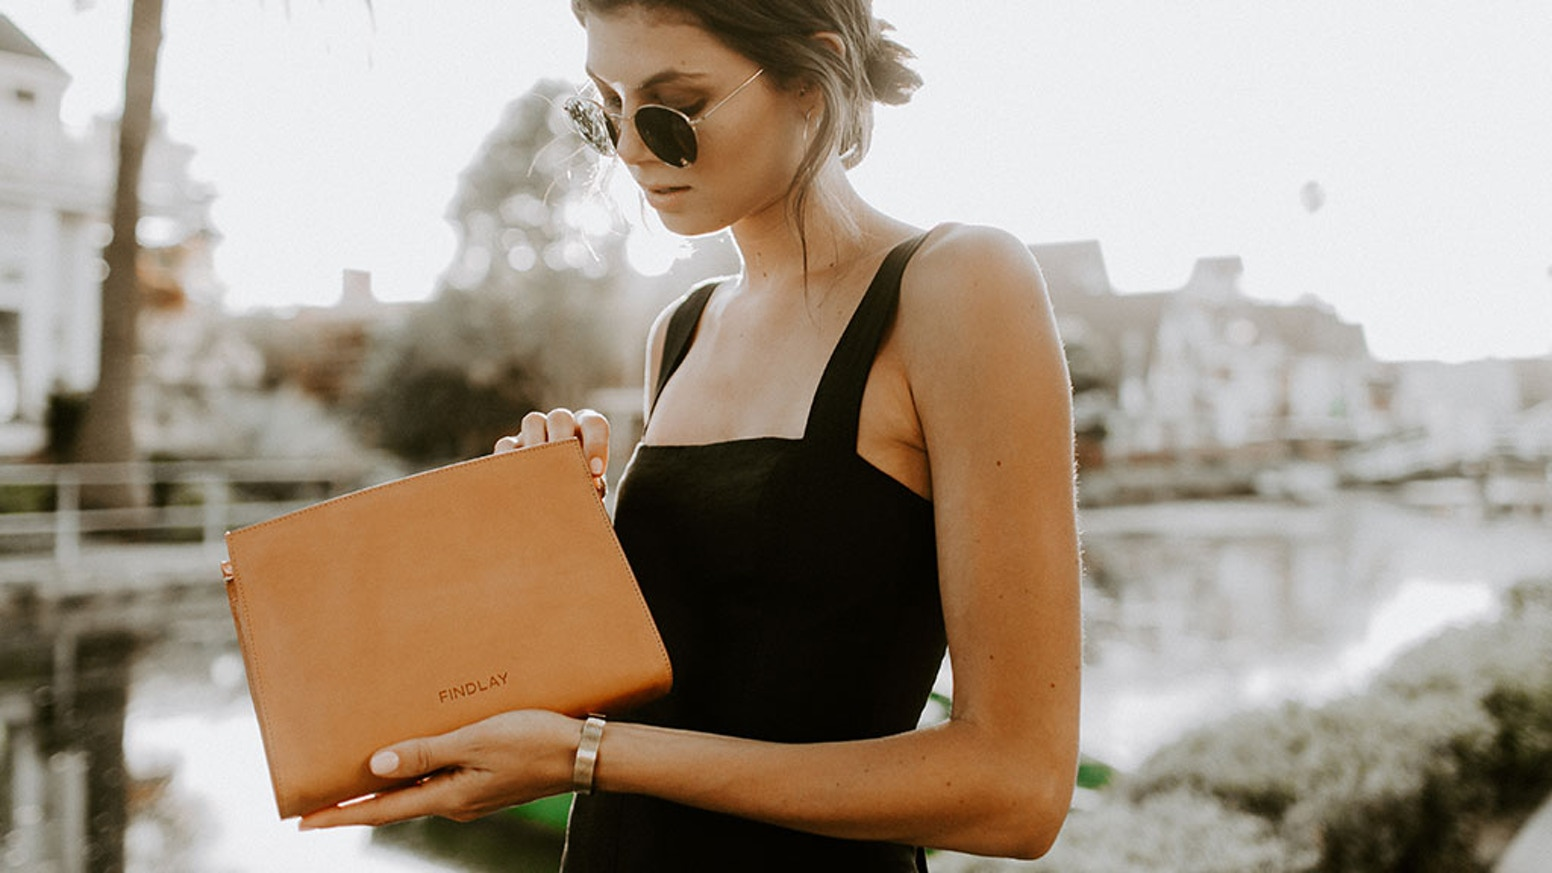 Findlay's Minimalist Leather Bags are ethically made in Italy for the conscious consumer